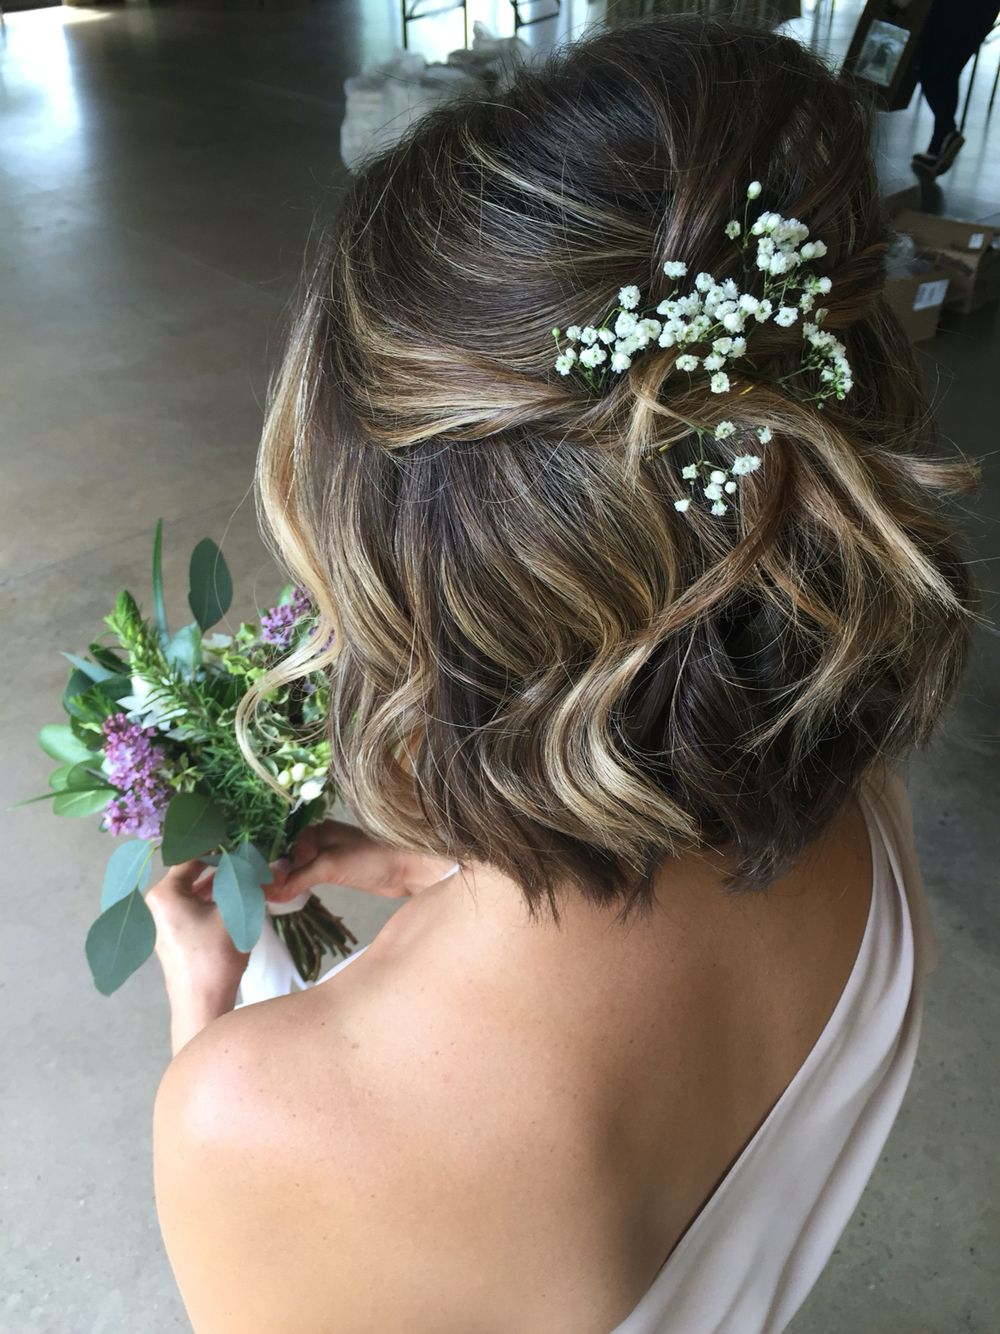 Pin By Dania Scheibel On Hair Pinterest Wedding Hairstyles